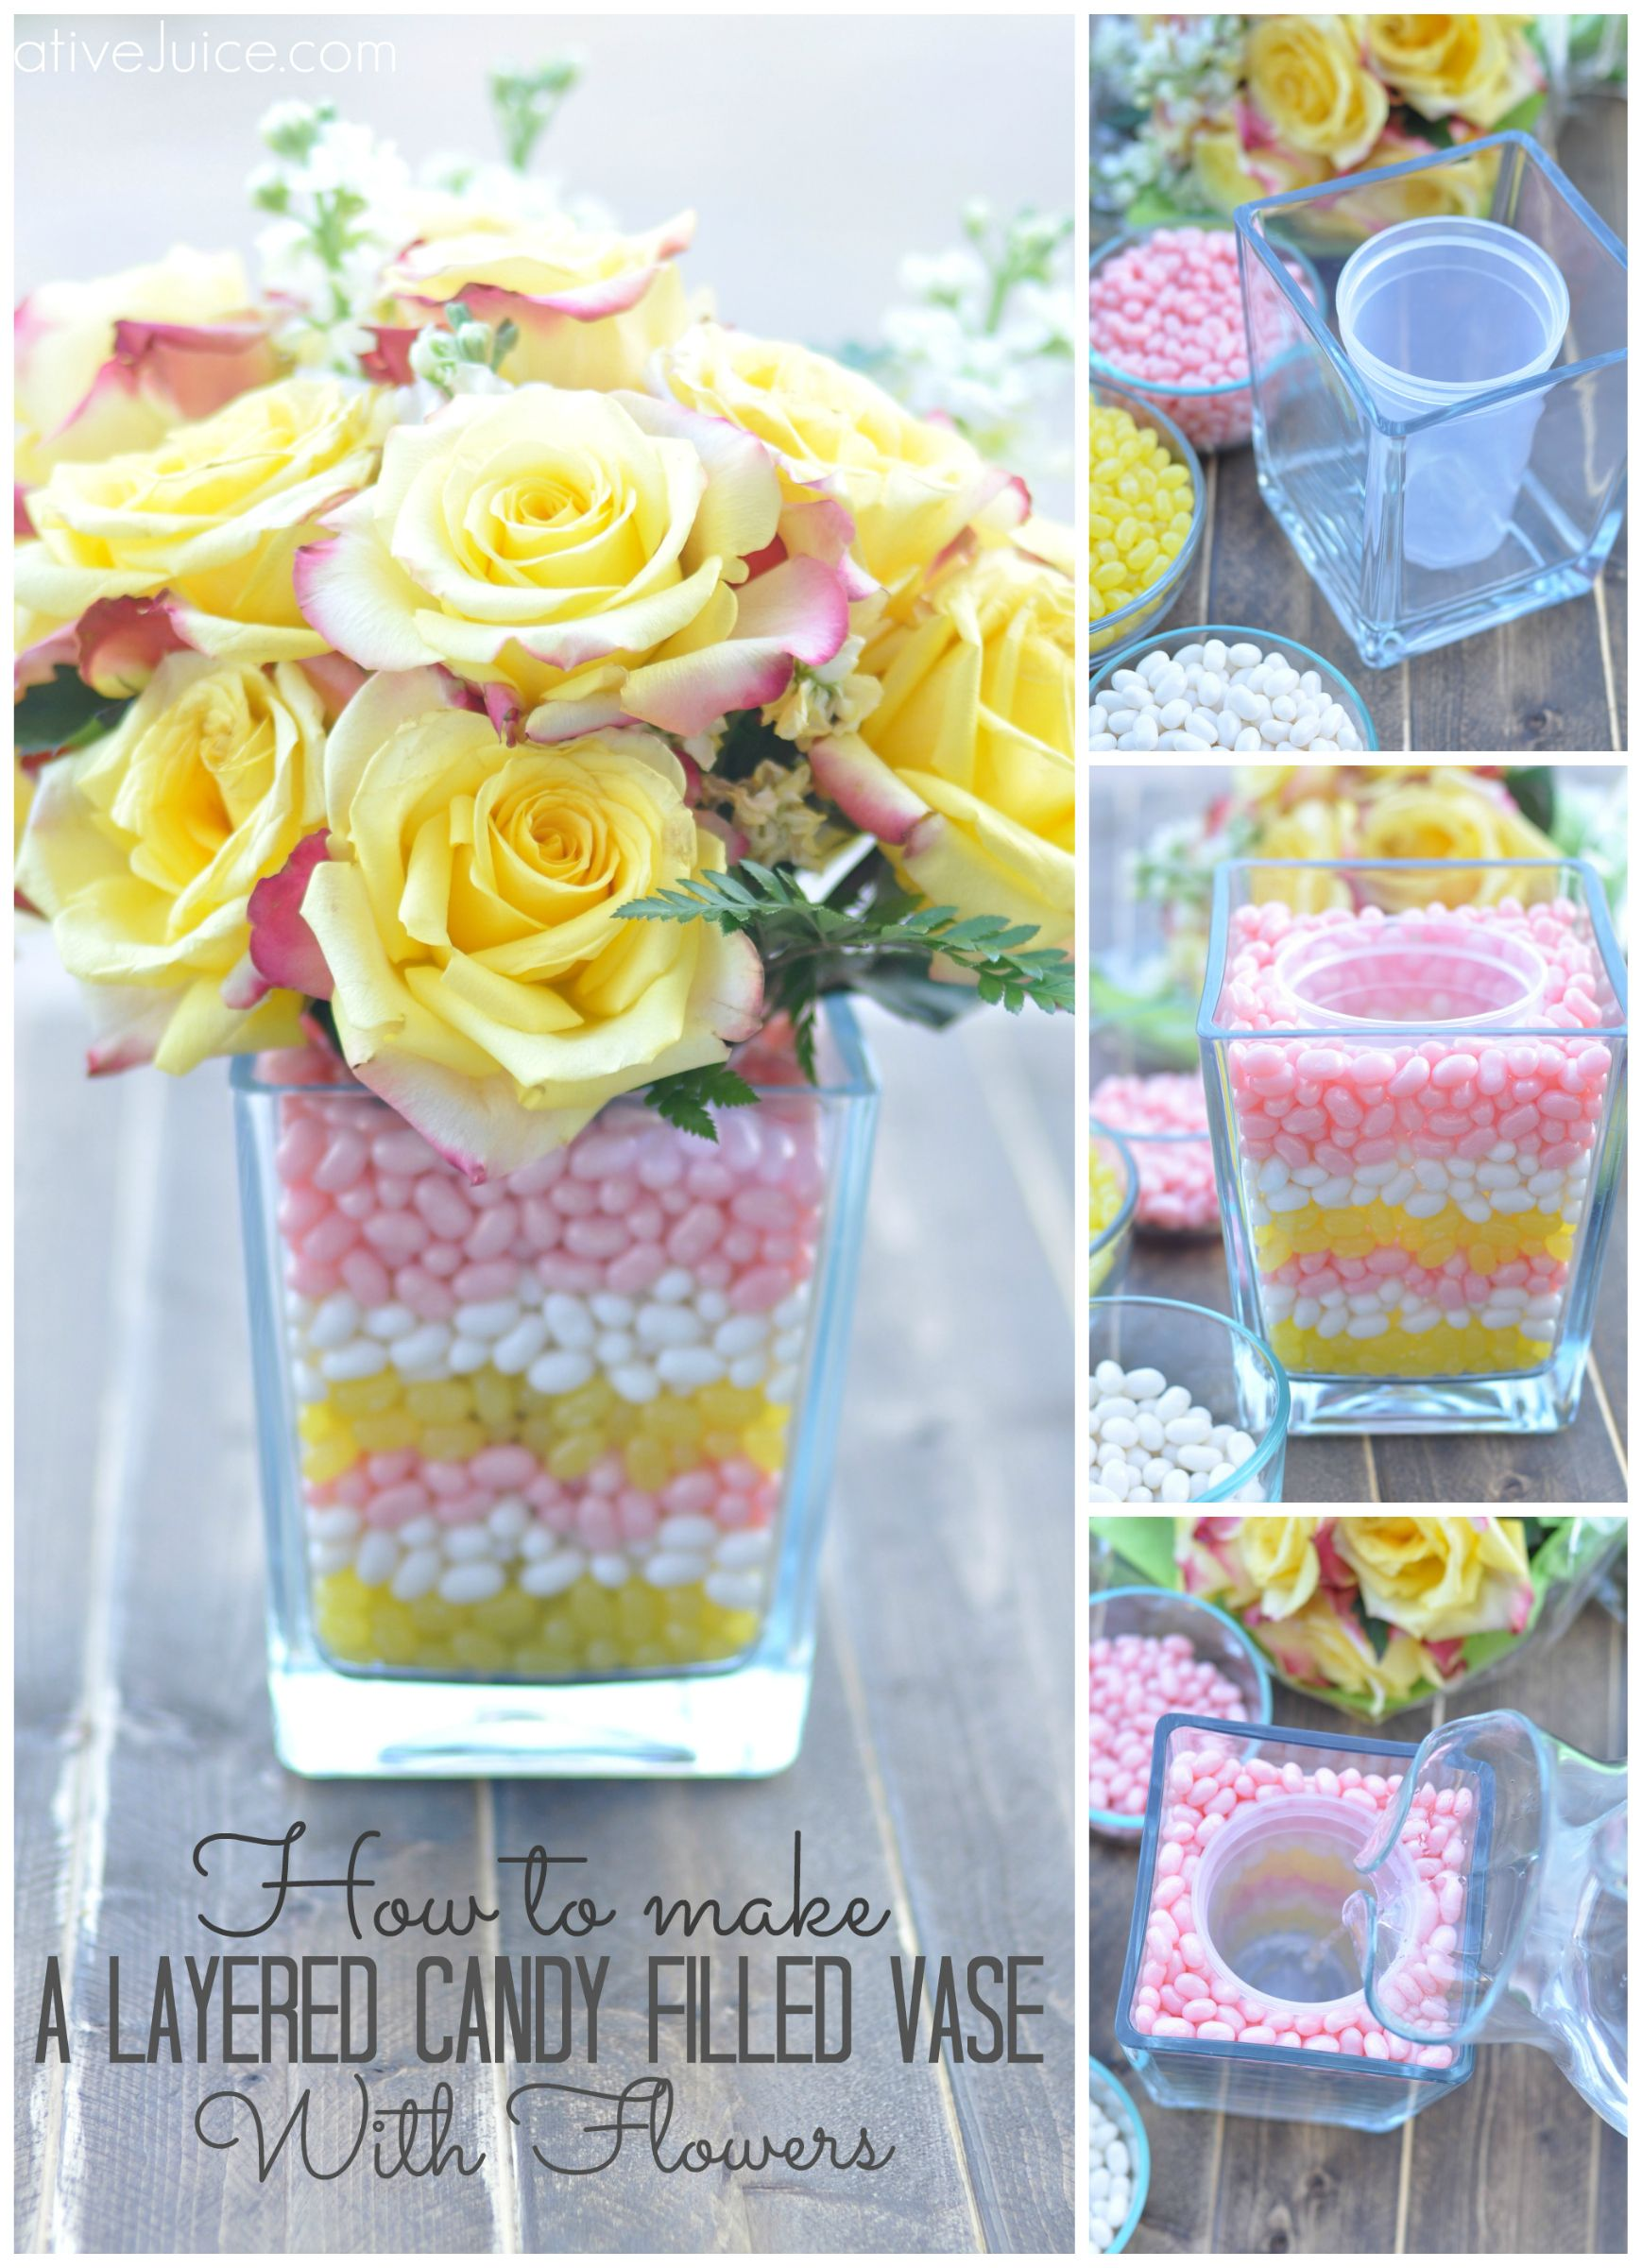 How to make a candy filled vase with flowers tutorial my next how to make a candy filled vase with flowers tutorial izmirmasajfo Choice Image